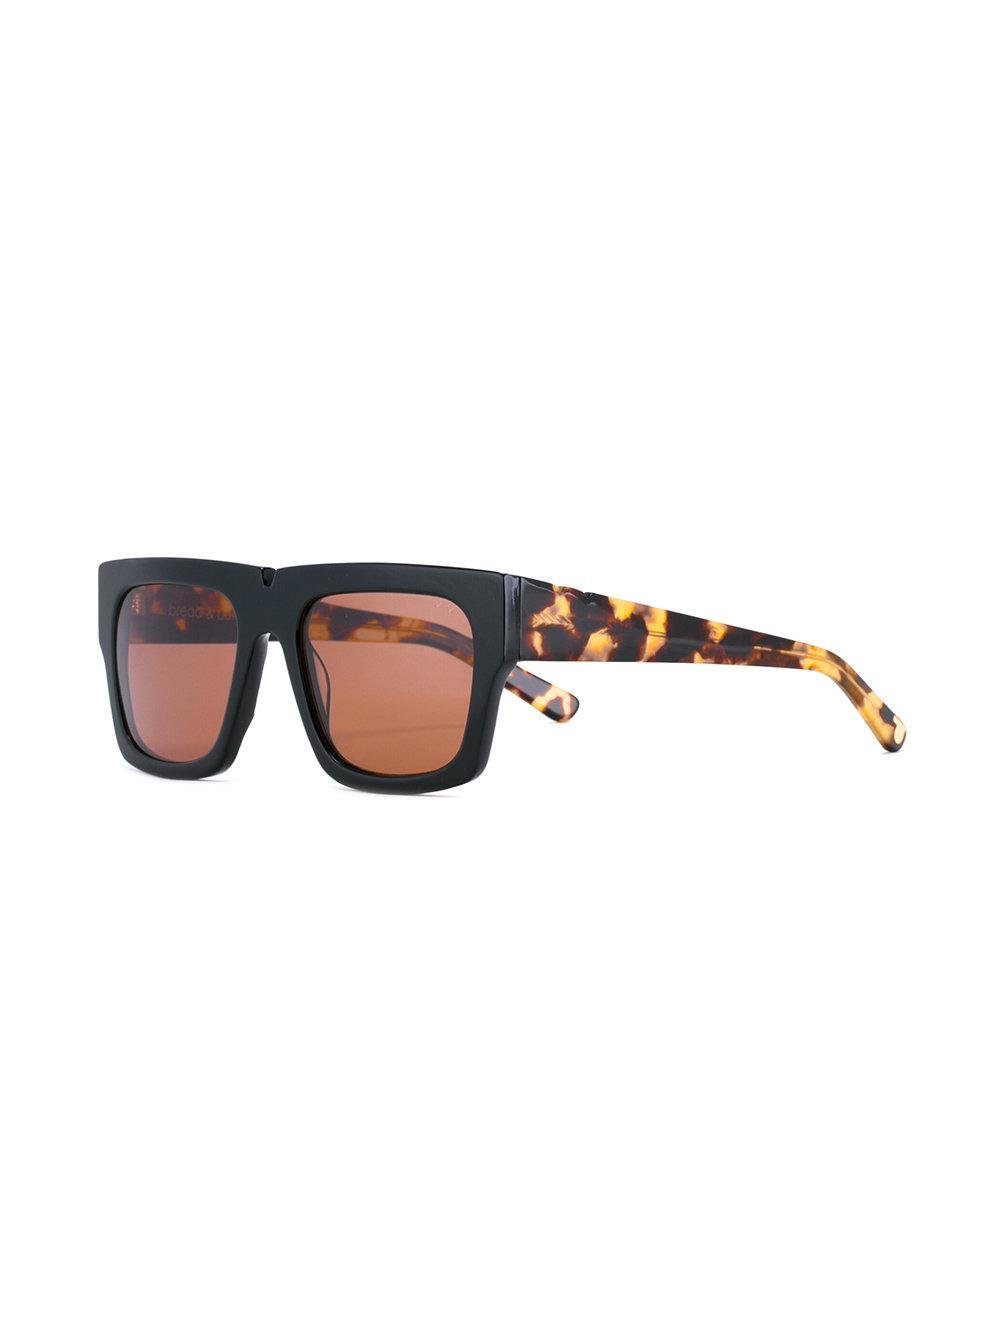 d9a19da911 Lyst - Pared Eyewear - Bread   Butter Sunglasses - Women - Plastic ...